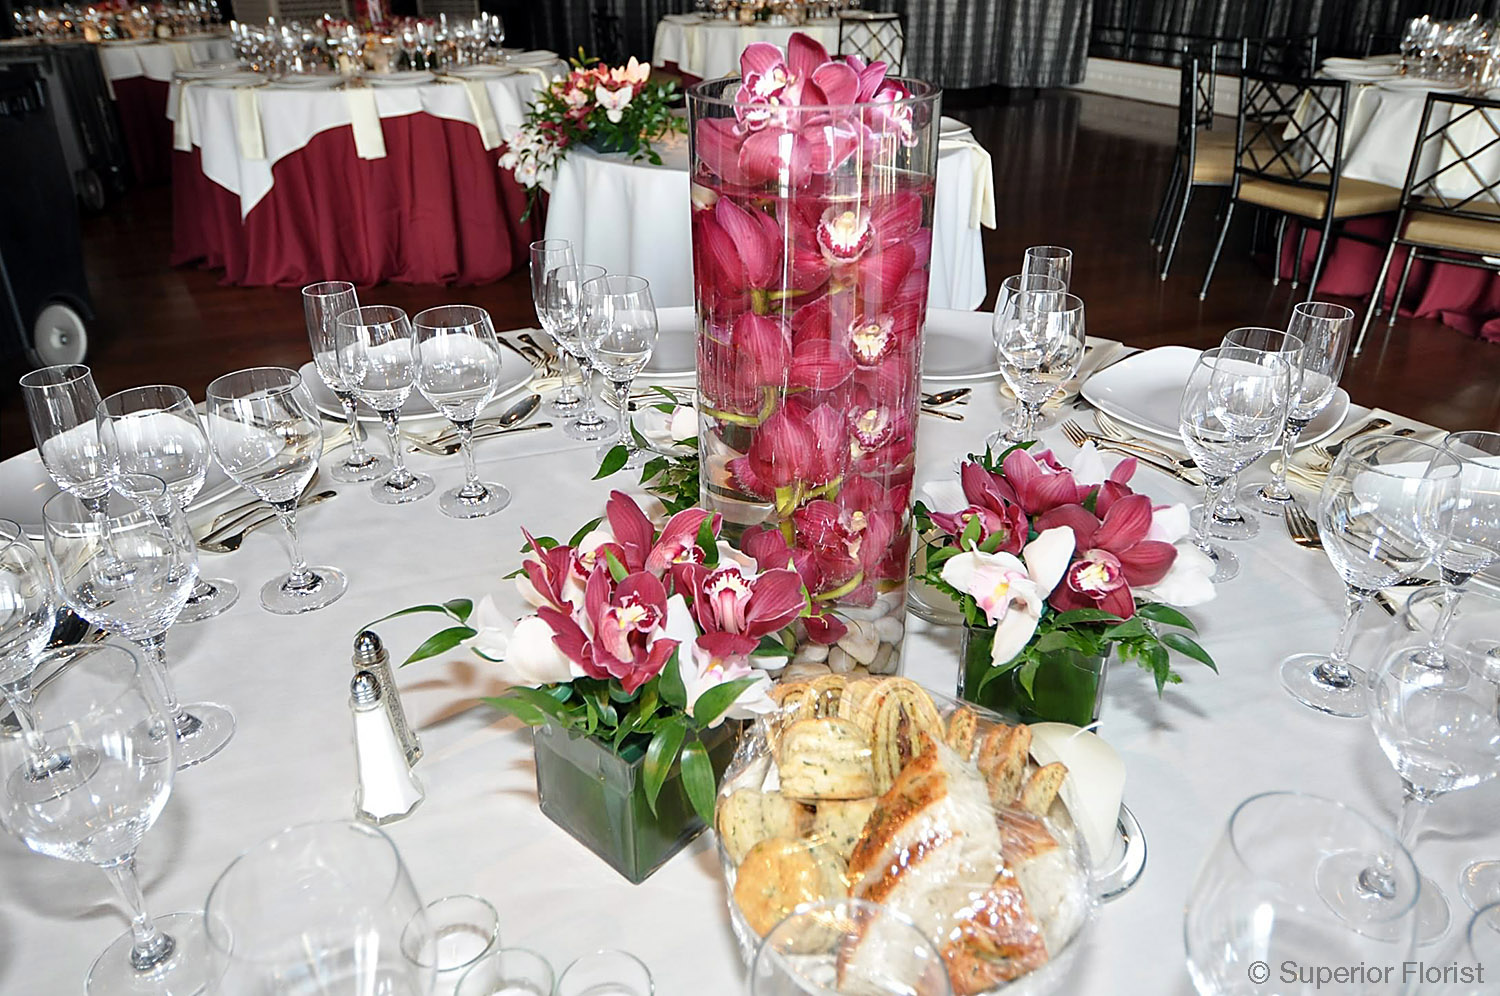 Superior Florist – Centerpieces: Submerged Cymbidium orchids in a clear glass, cylinder vase with river rocks in base. Three smaller arrangements of Cymbidium orchids around main arrangement (two in front and one behind).